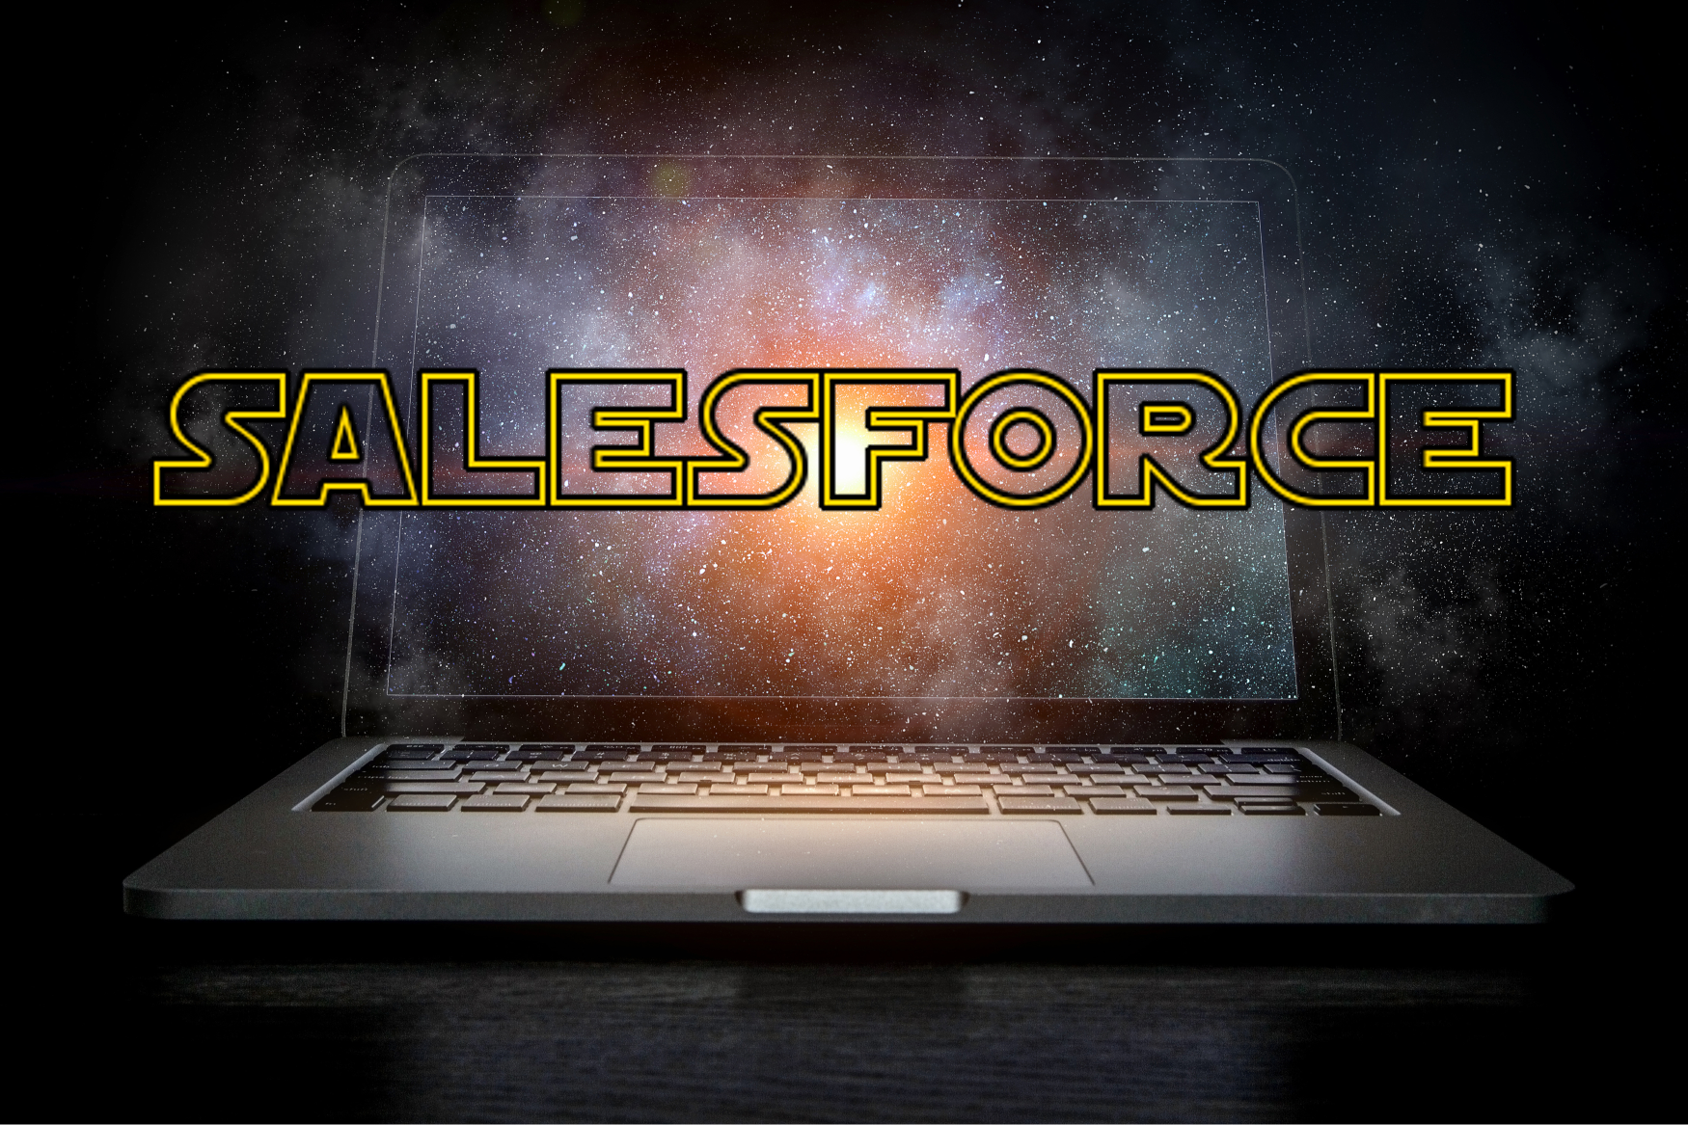 May the Salesforce Be with You